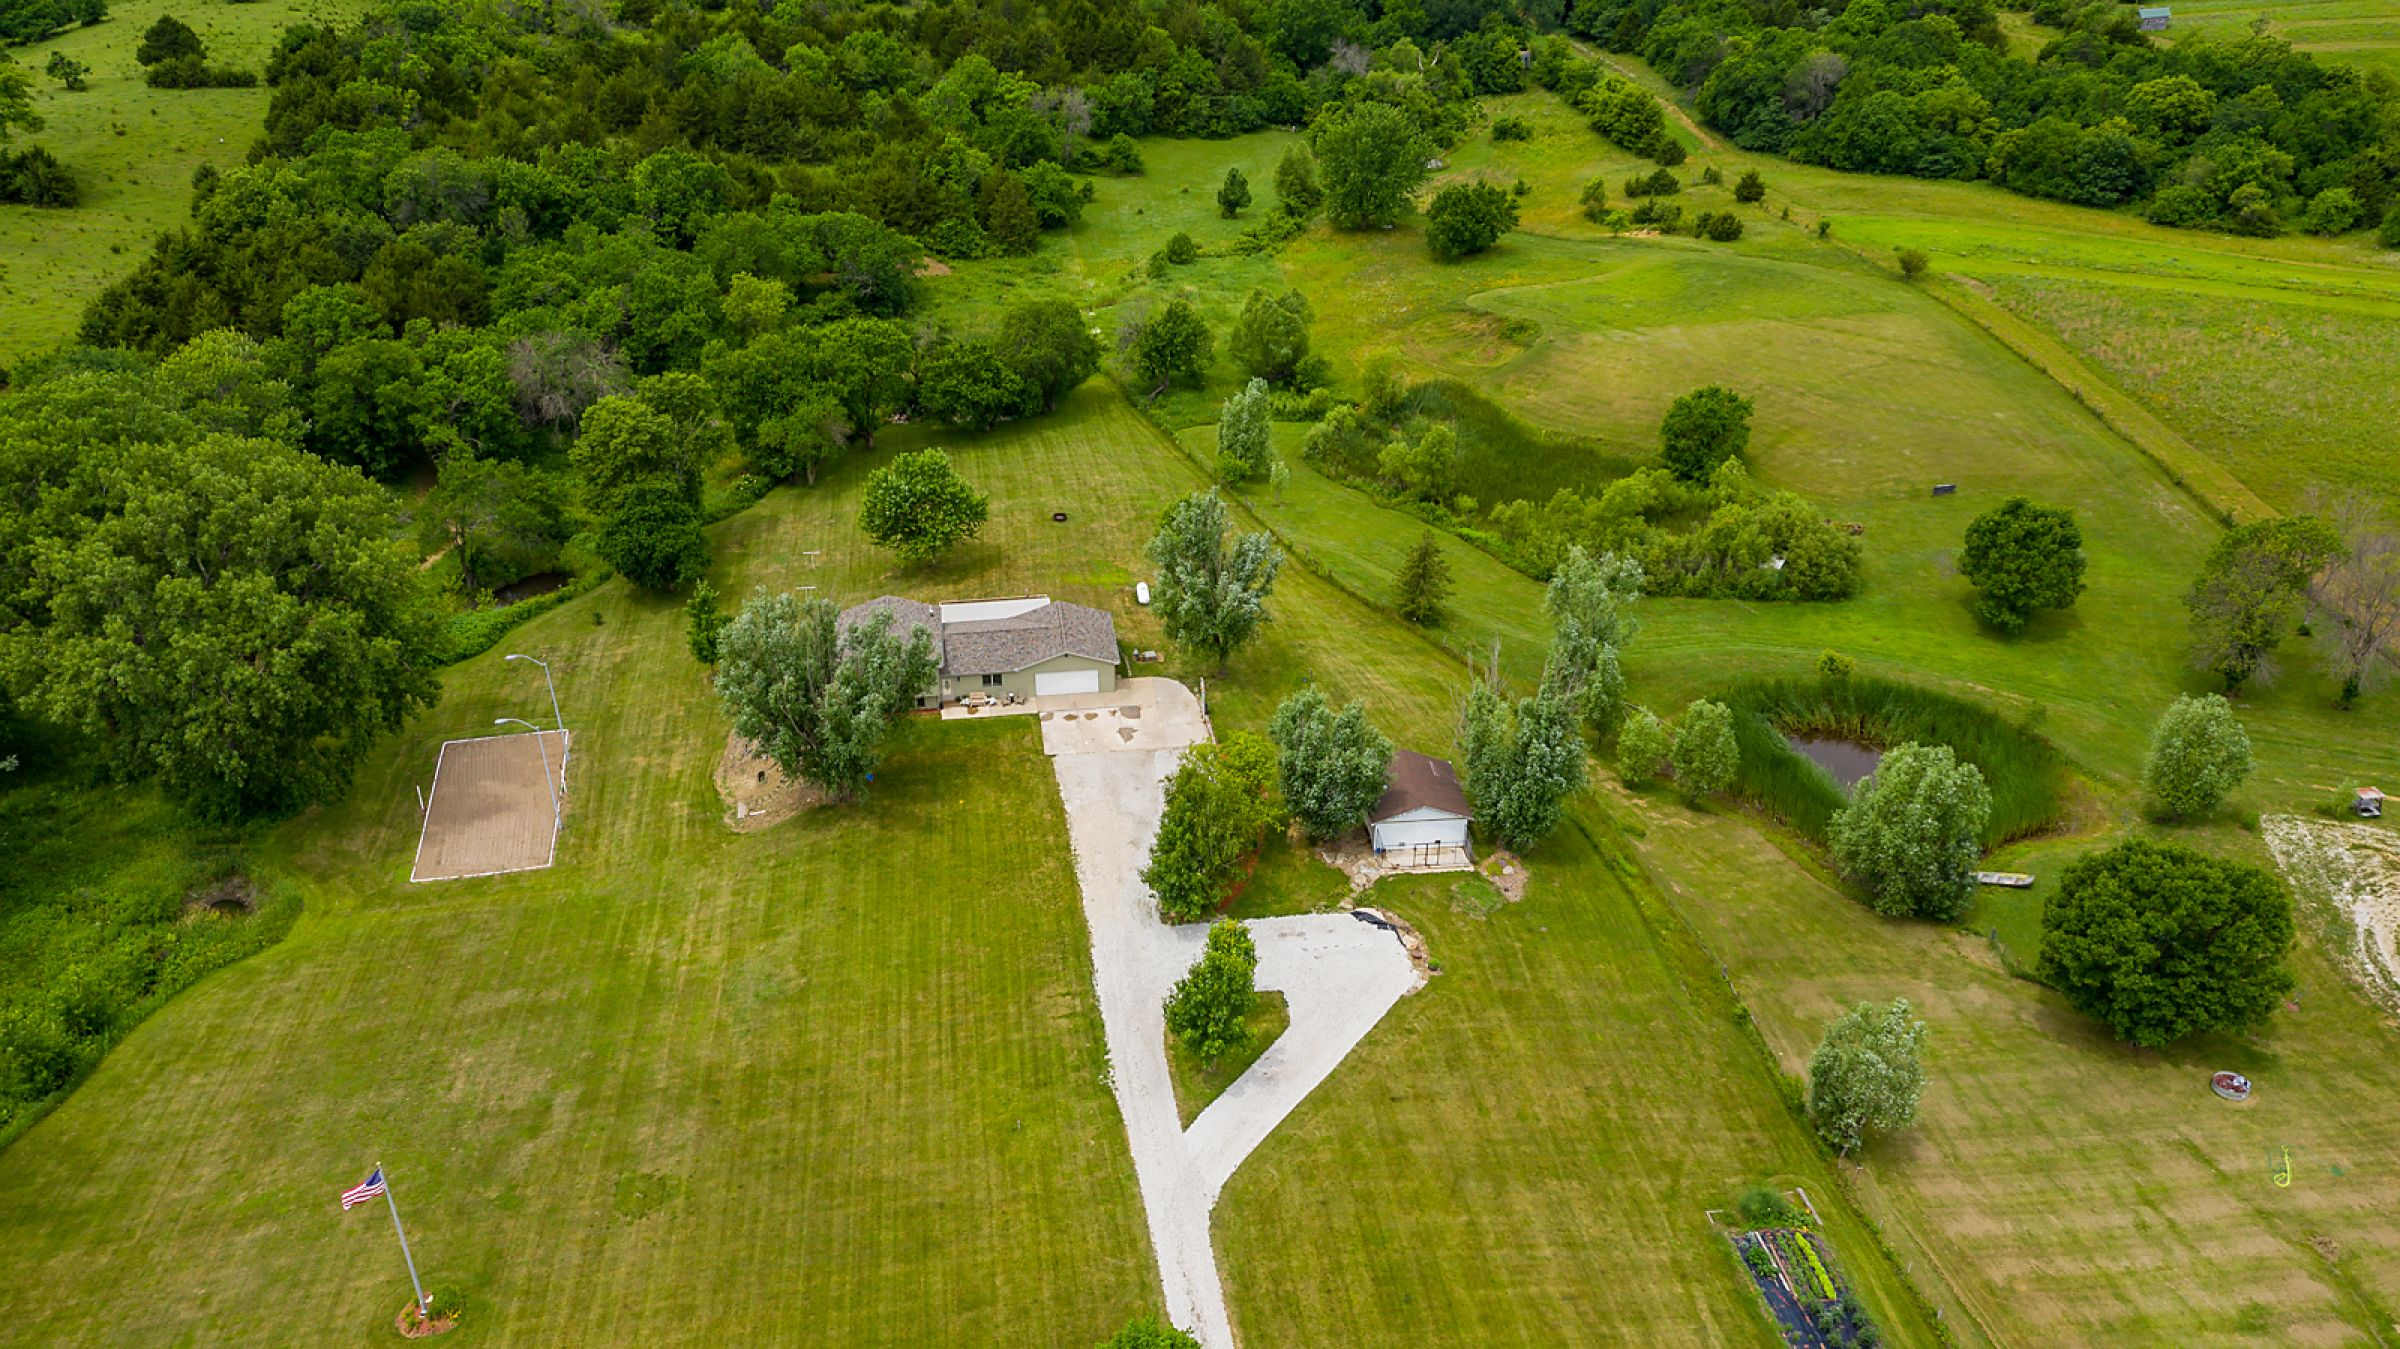 residential-warren-county-iowa-13-acres-listing-number-15056-5-2020-07-02-015919.jpg